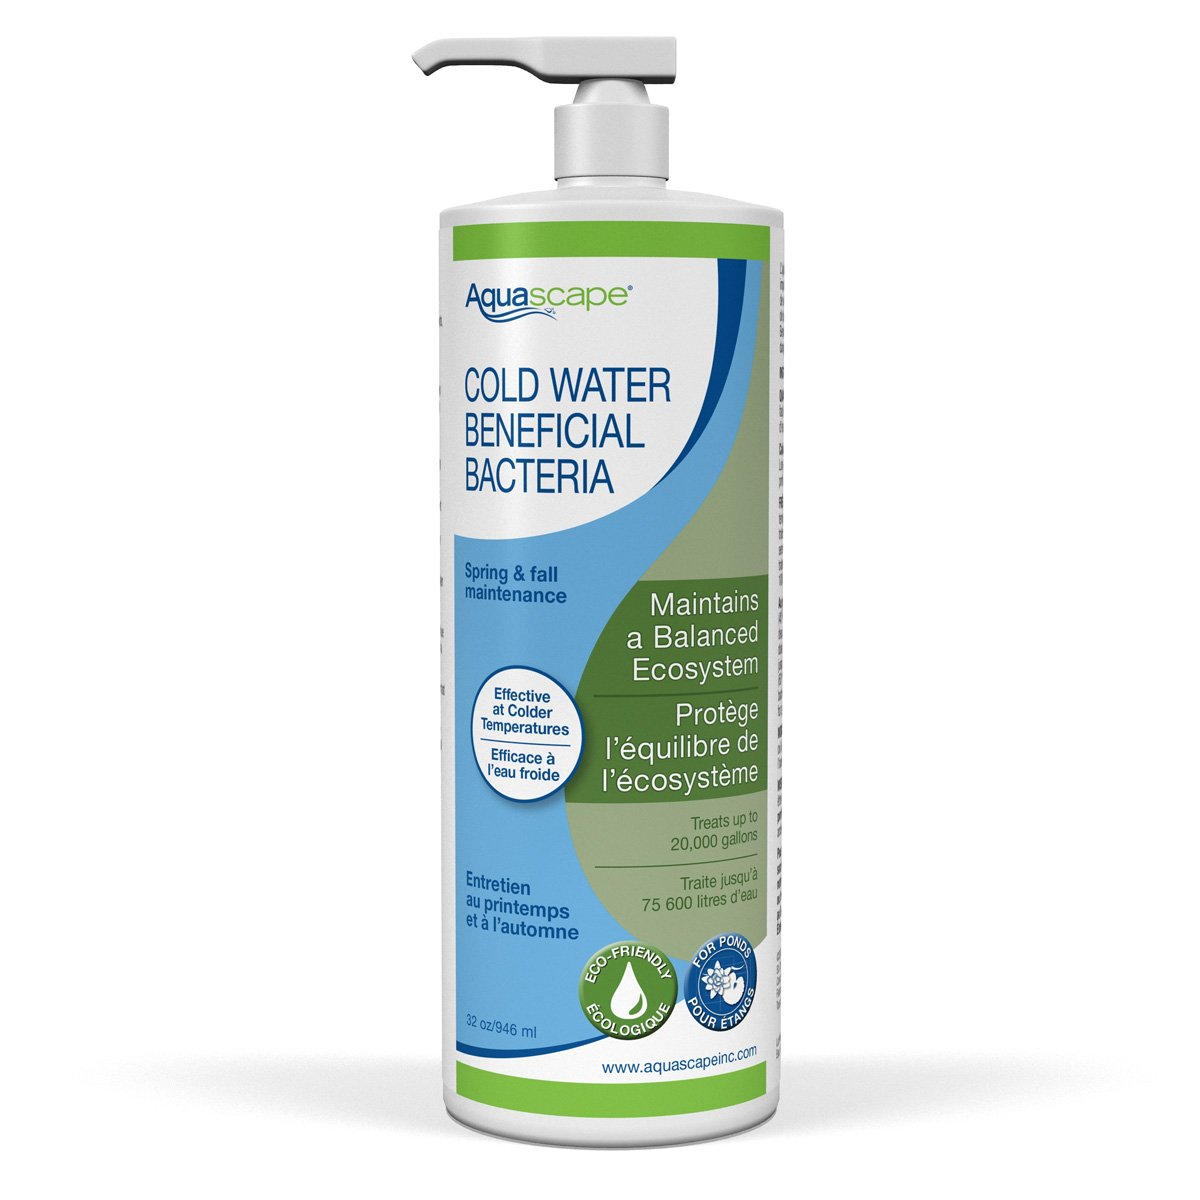 Aquascape Cold Water Treatment Beneficial Bacteria Liquid 32 Ounces / 946 ml for Pond Water Feature